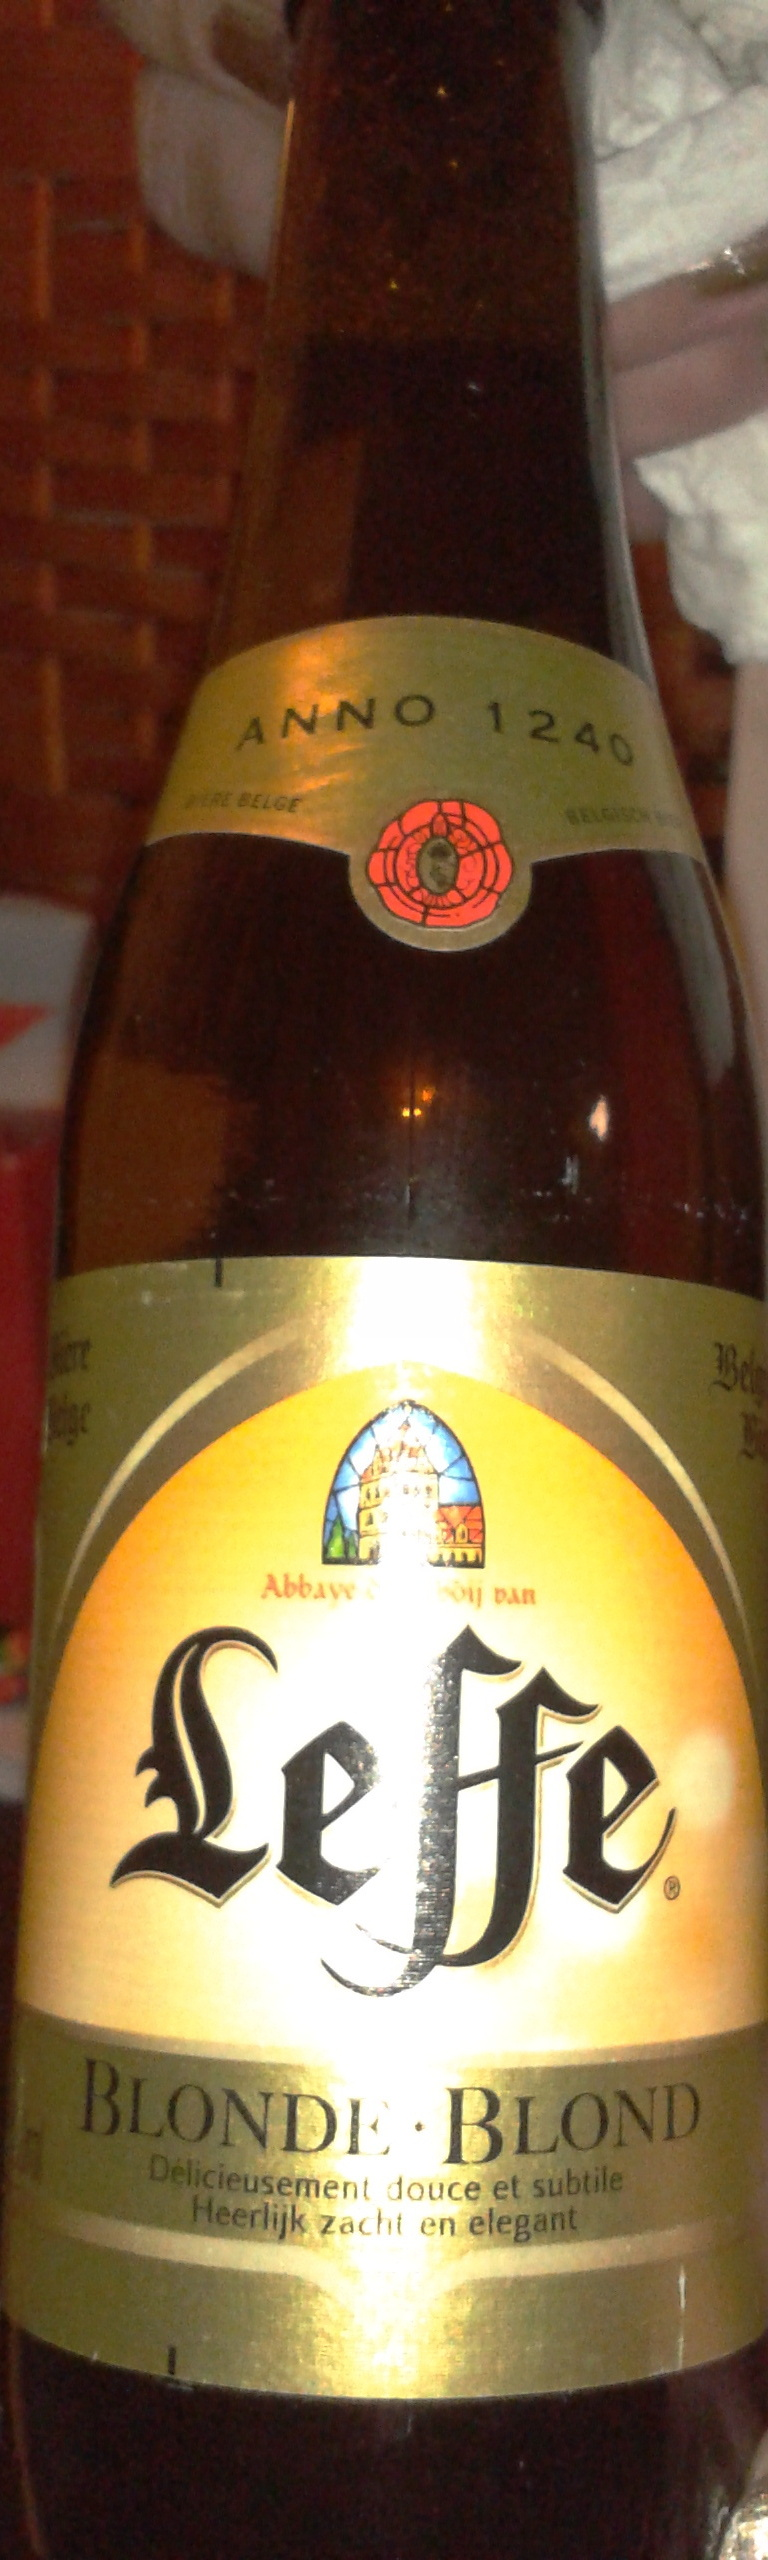 Leffe - Product